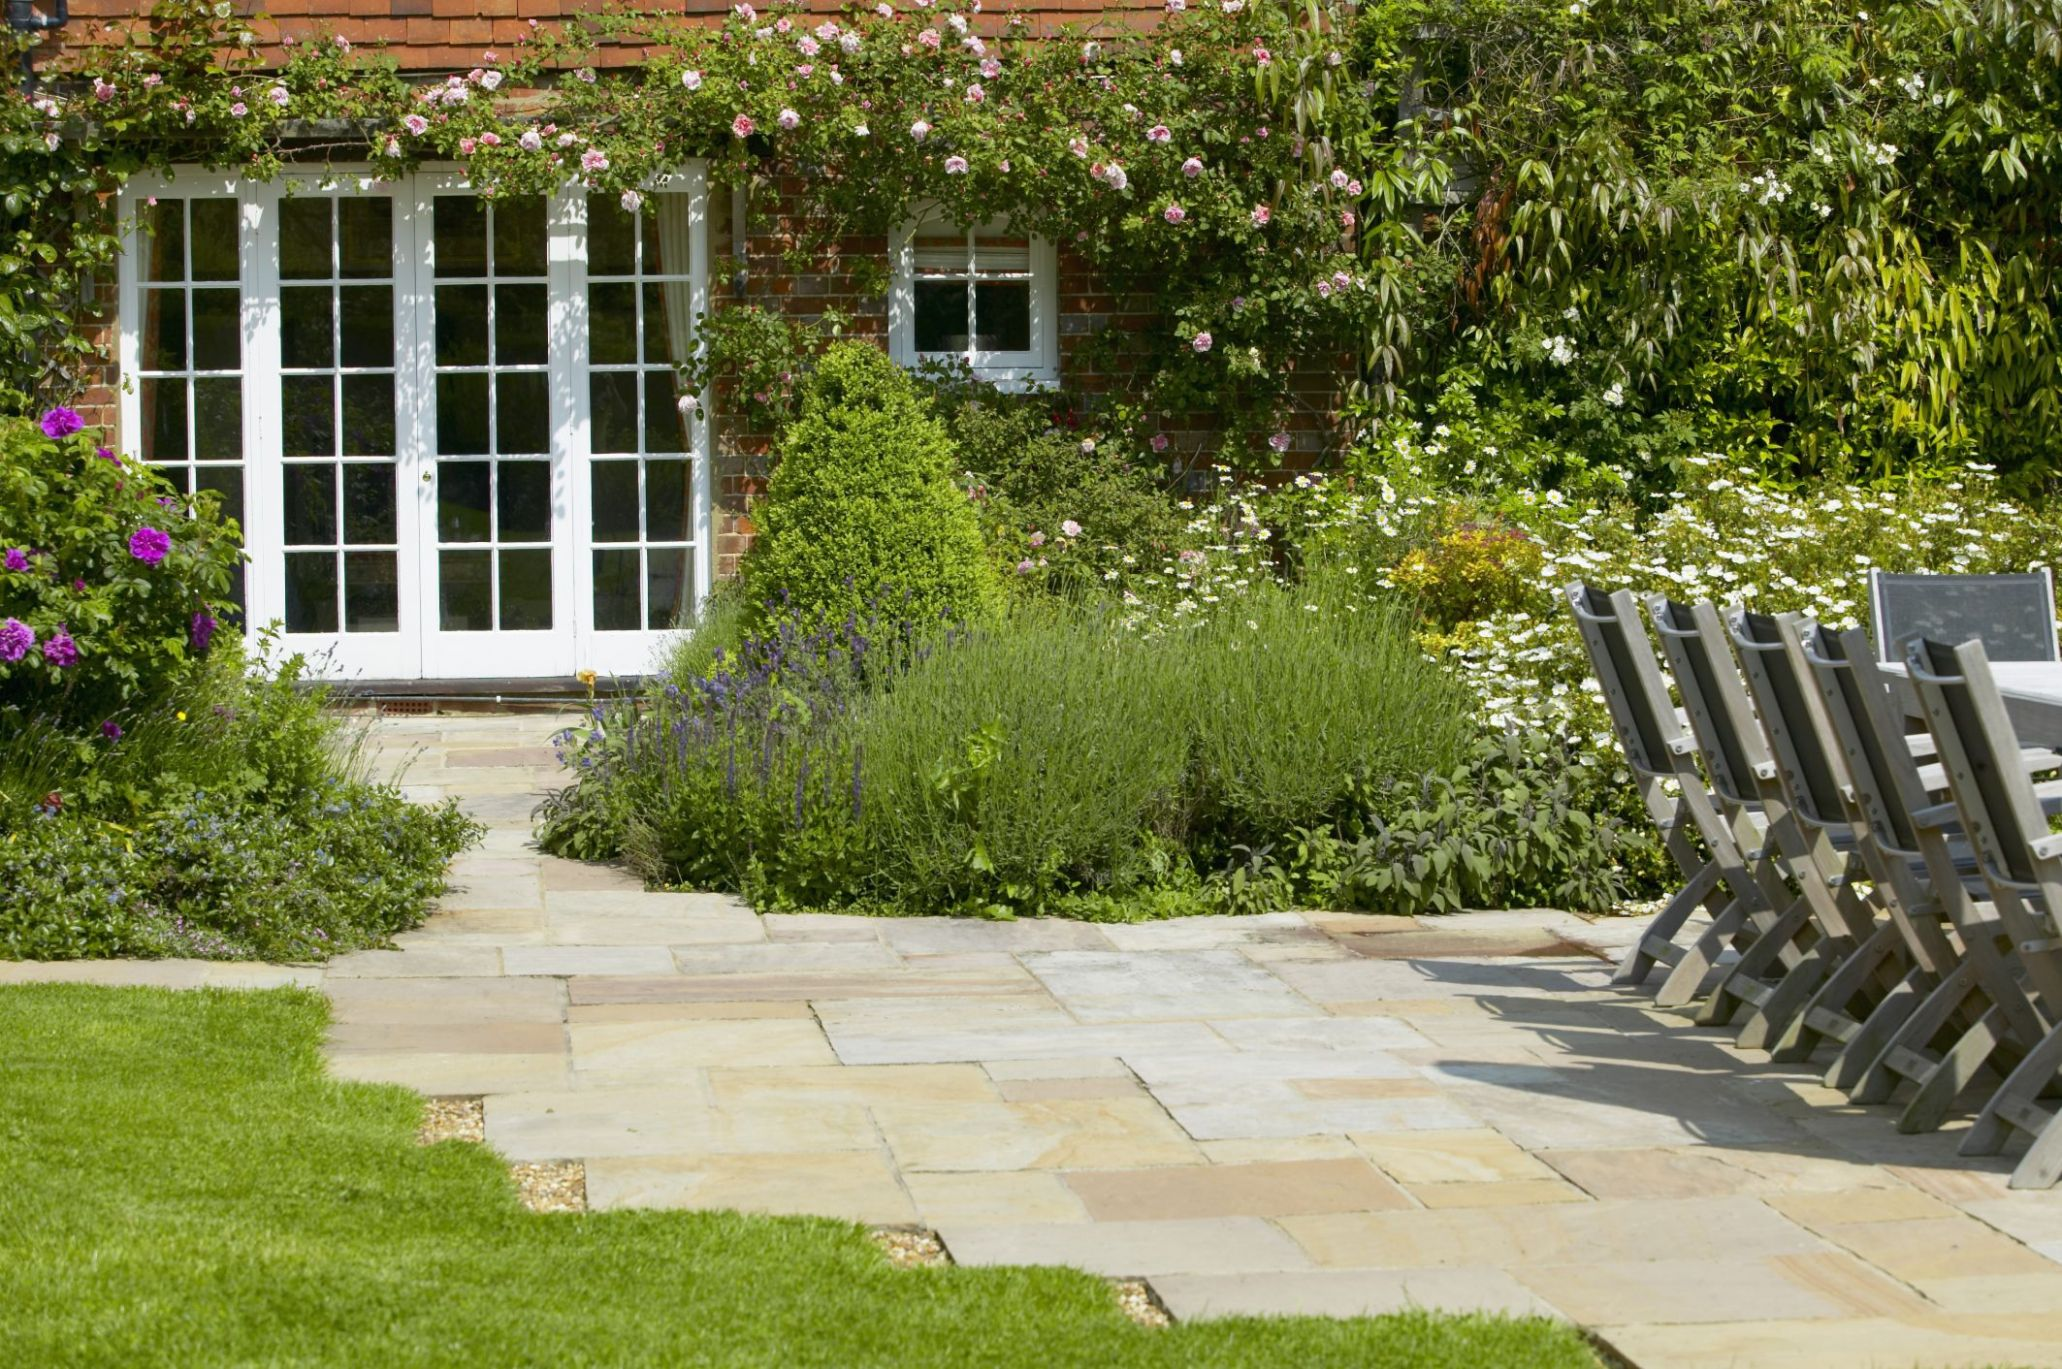 12 Landscaping Ideas For A Low-Maintenance Yard - backyard ideas low maintenance